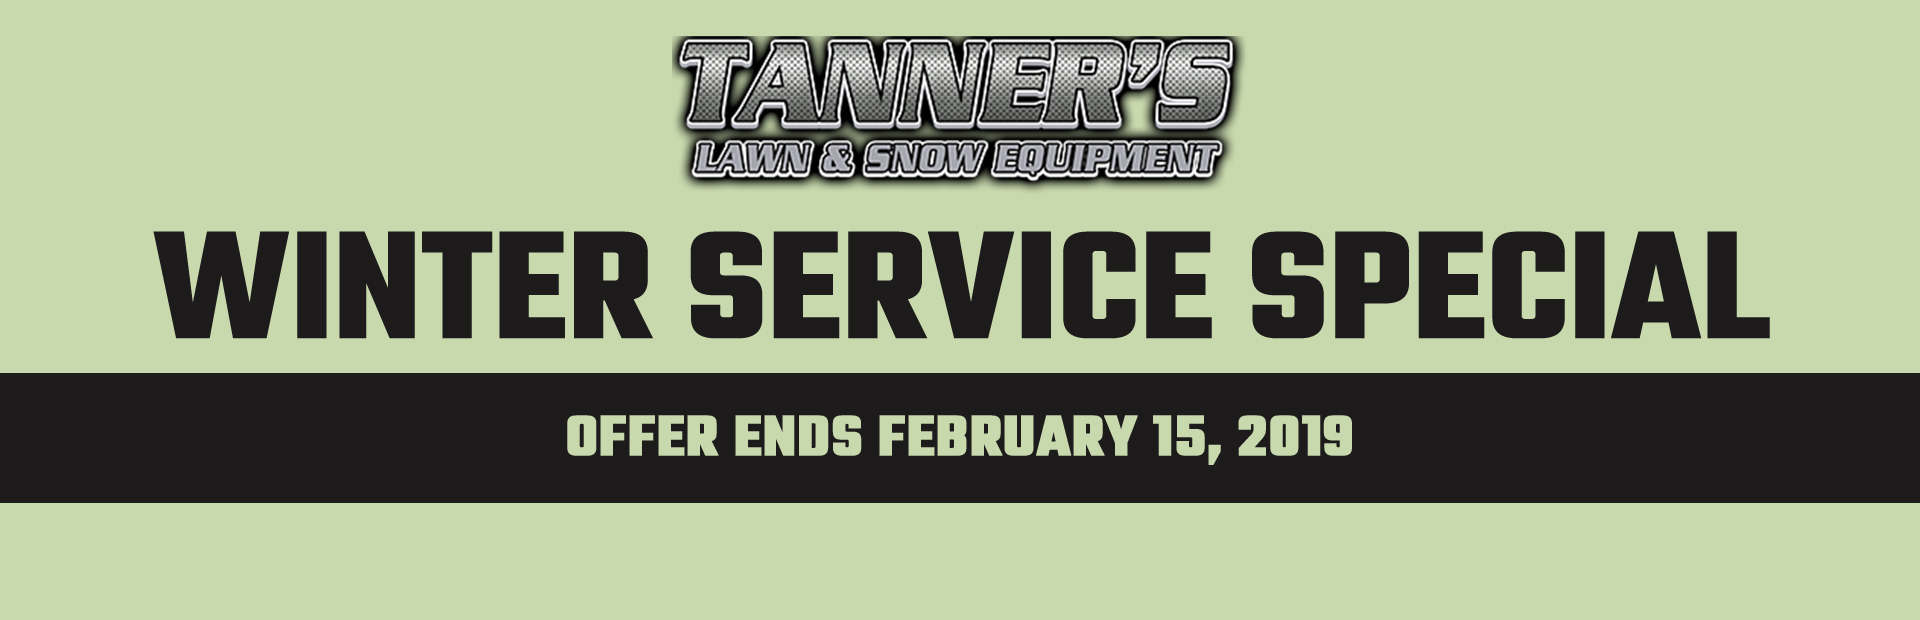 Winter Service Special: Offer ends February 15, 2019. Click here for details.